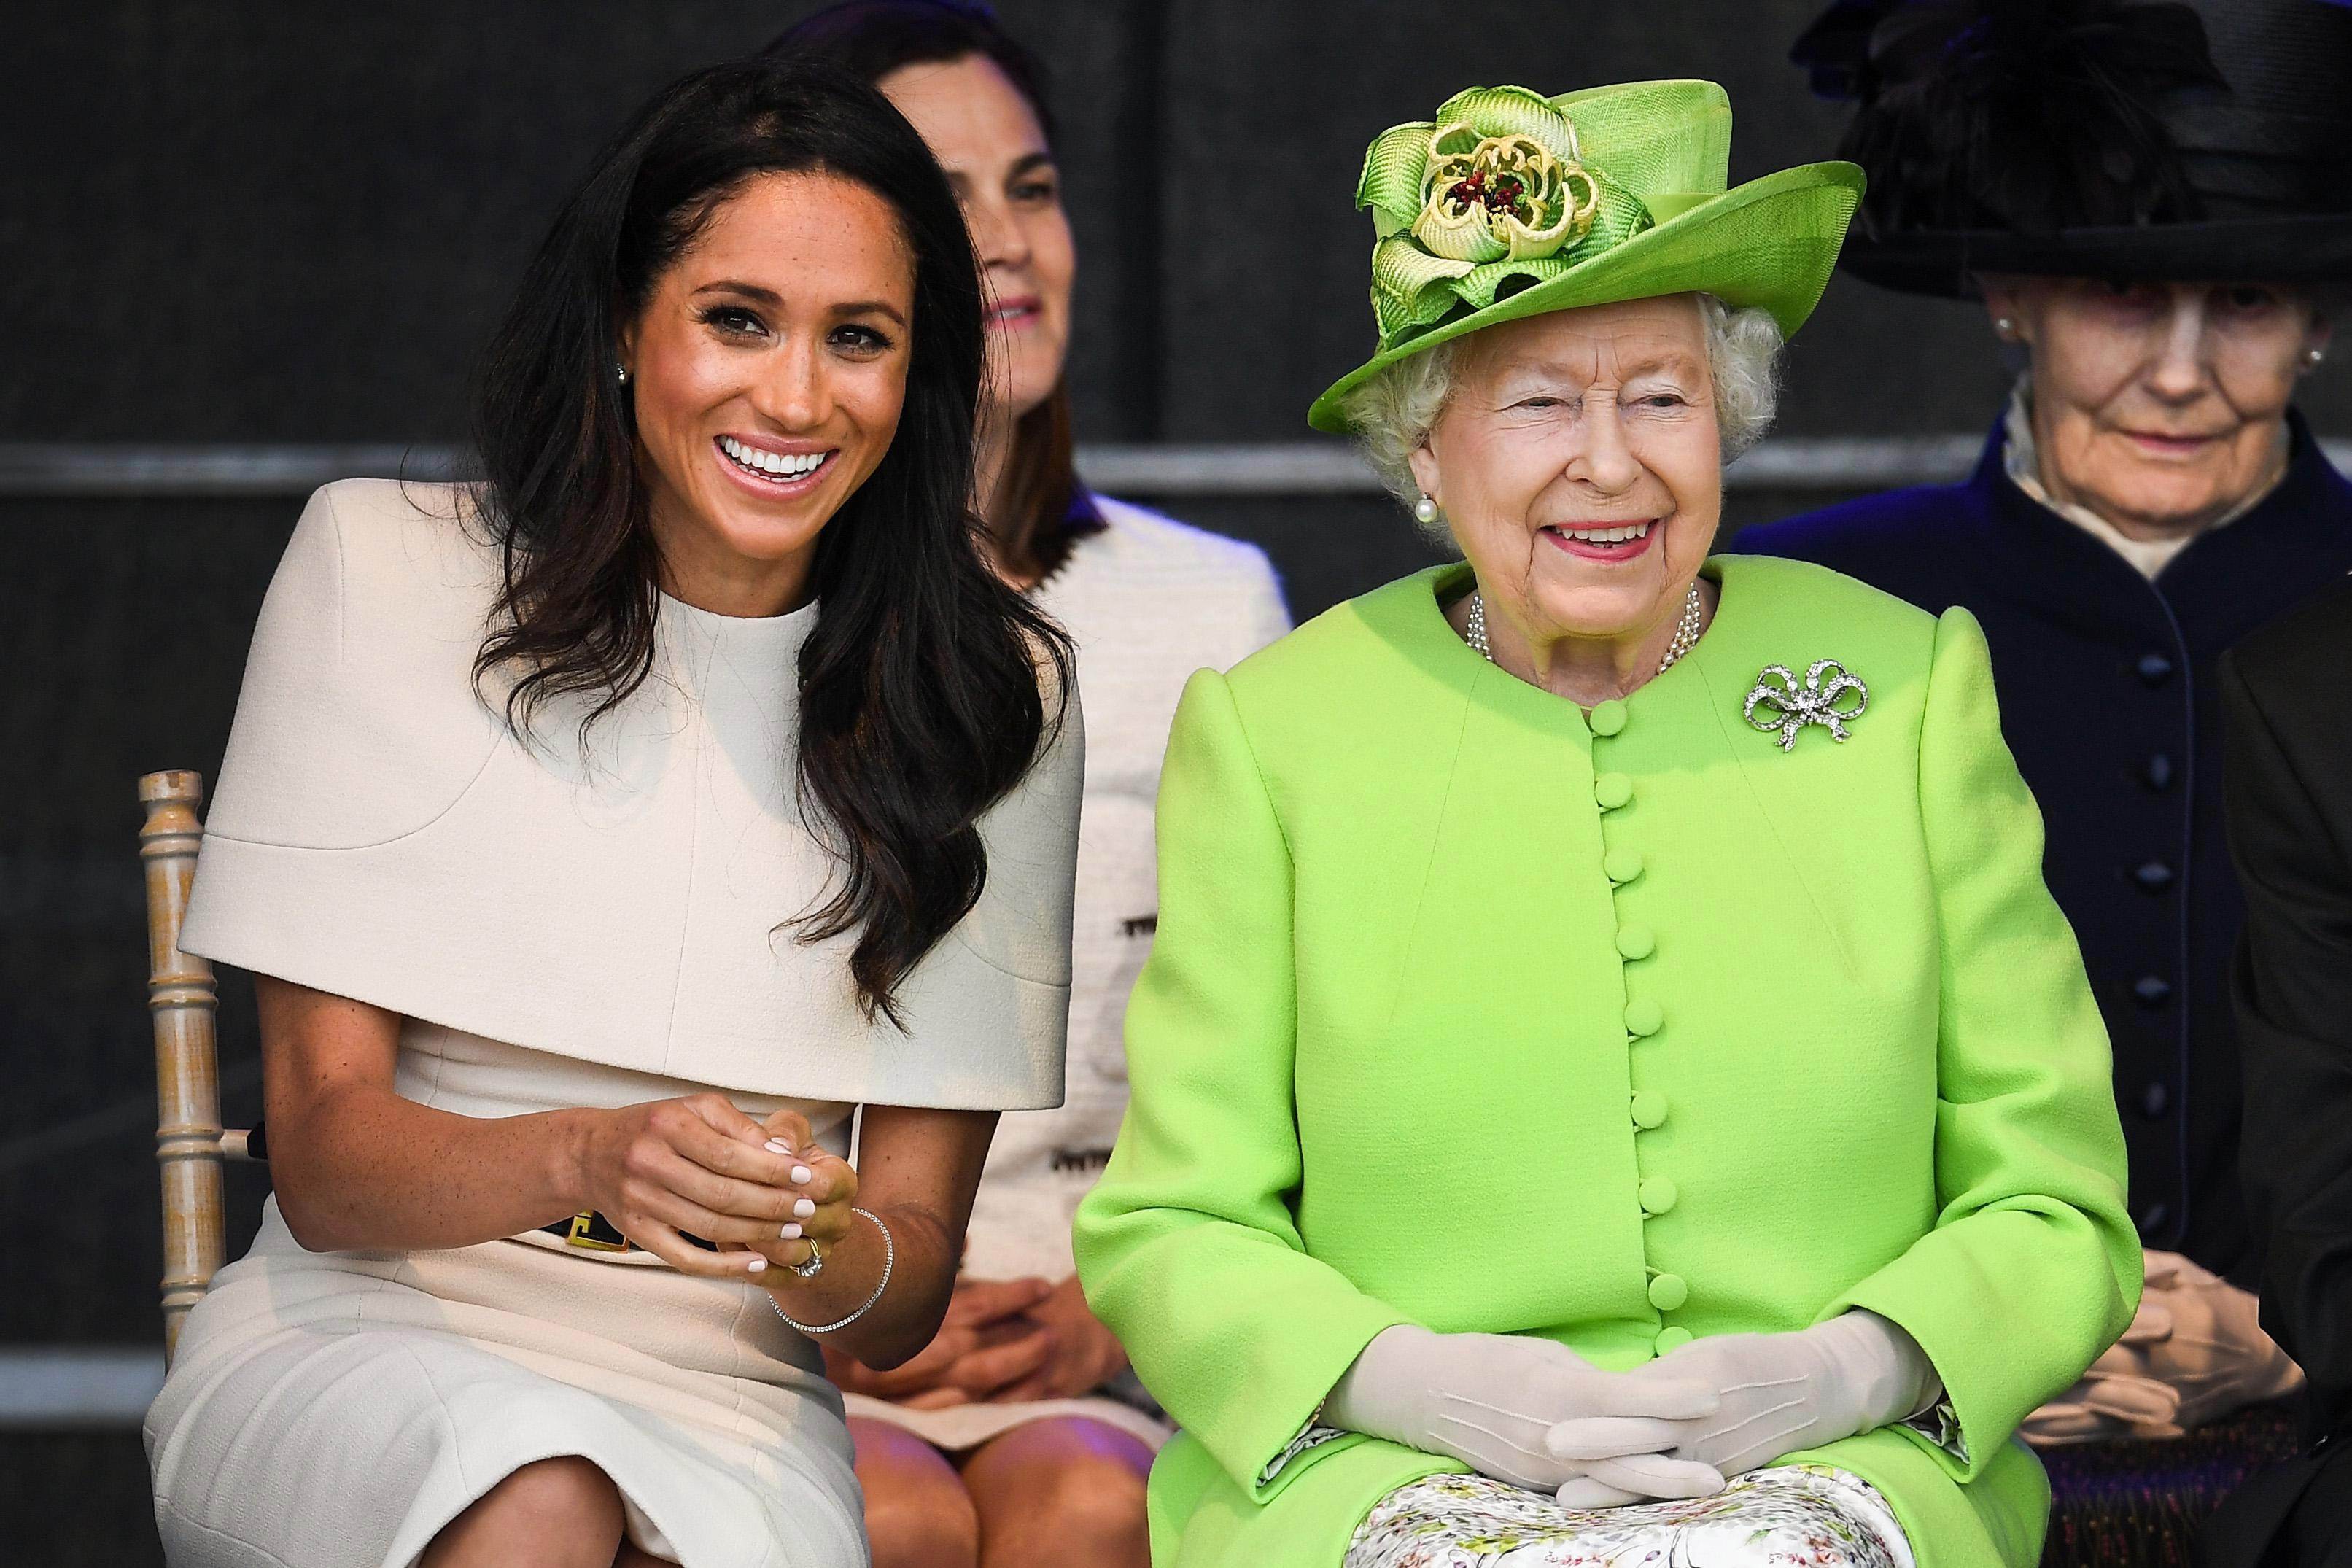 Meghan Markle's 'special bond' with The Queen and 'kind-hearted' nature ''proven' in first official royal jobs